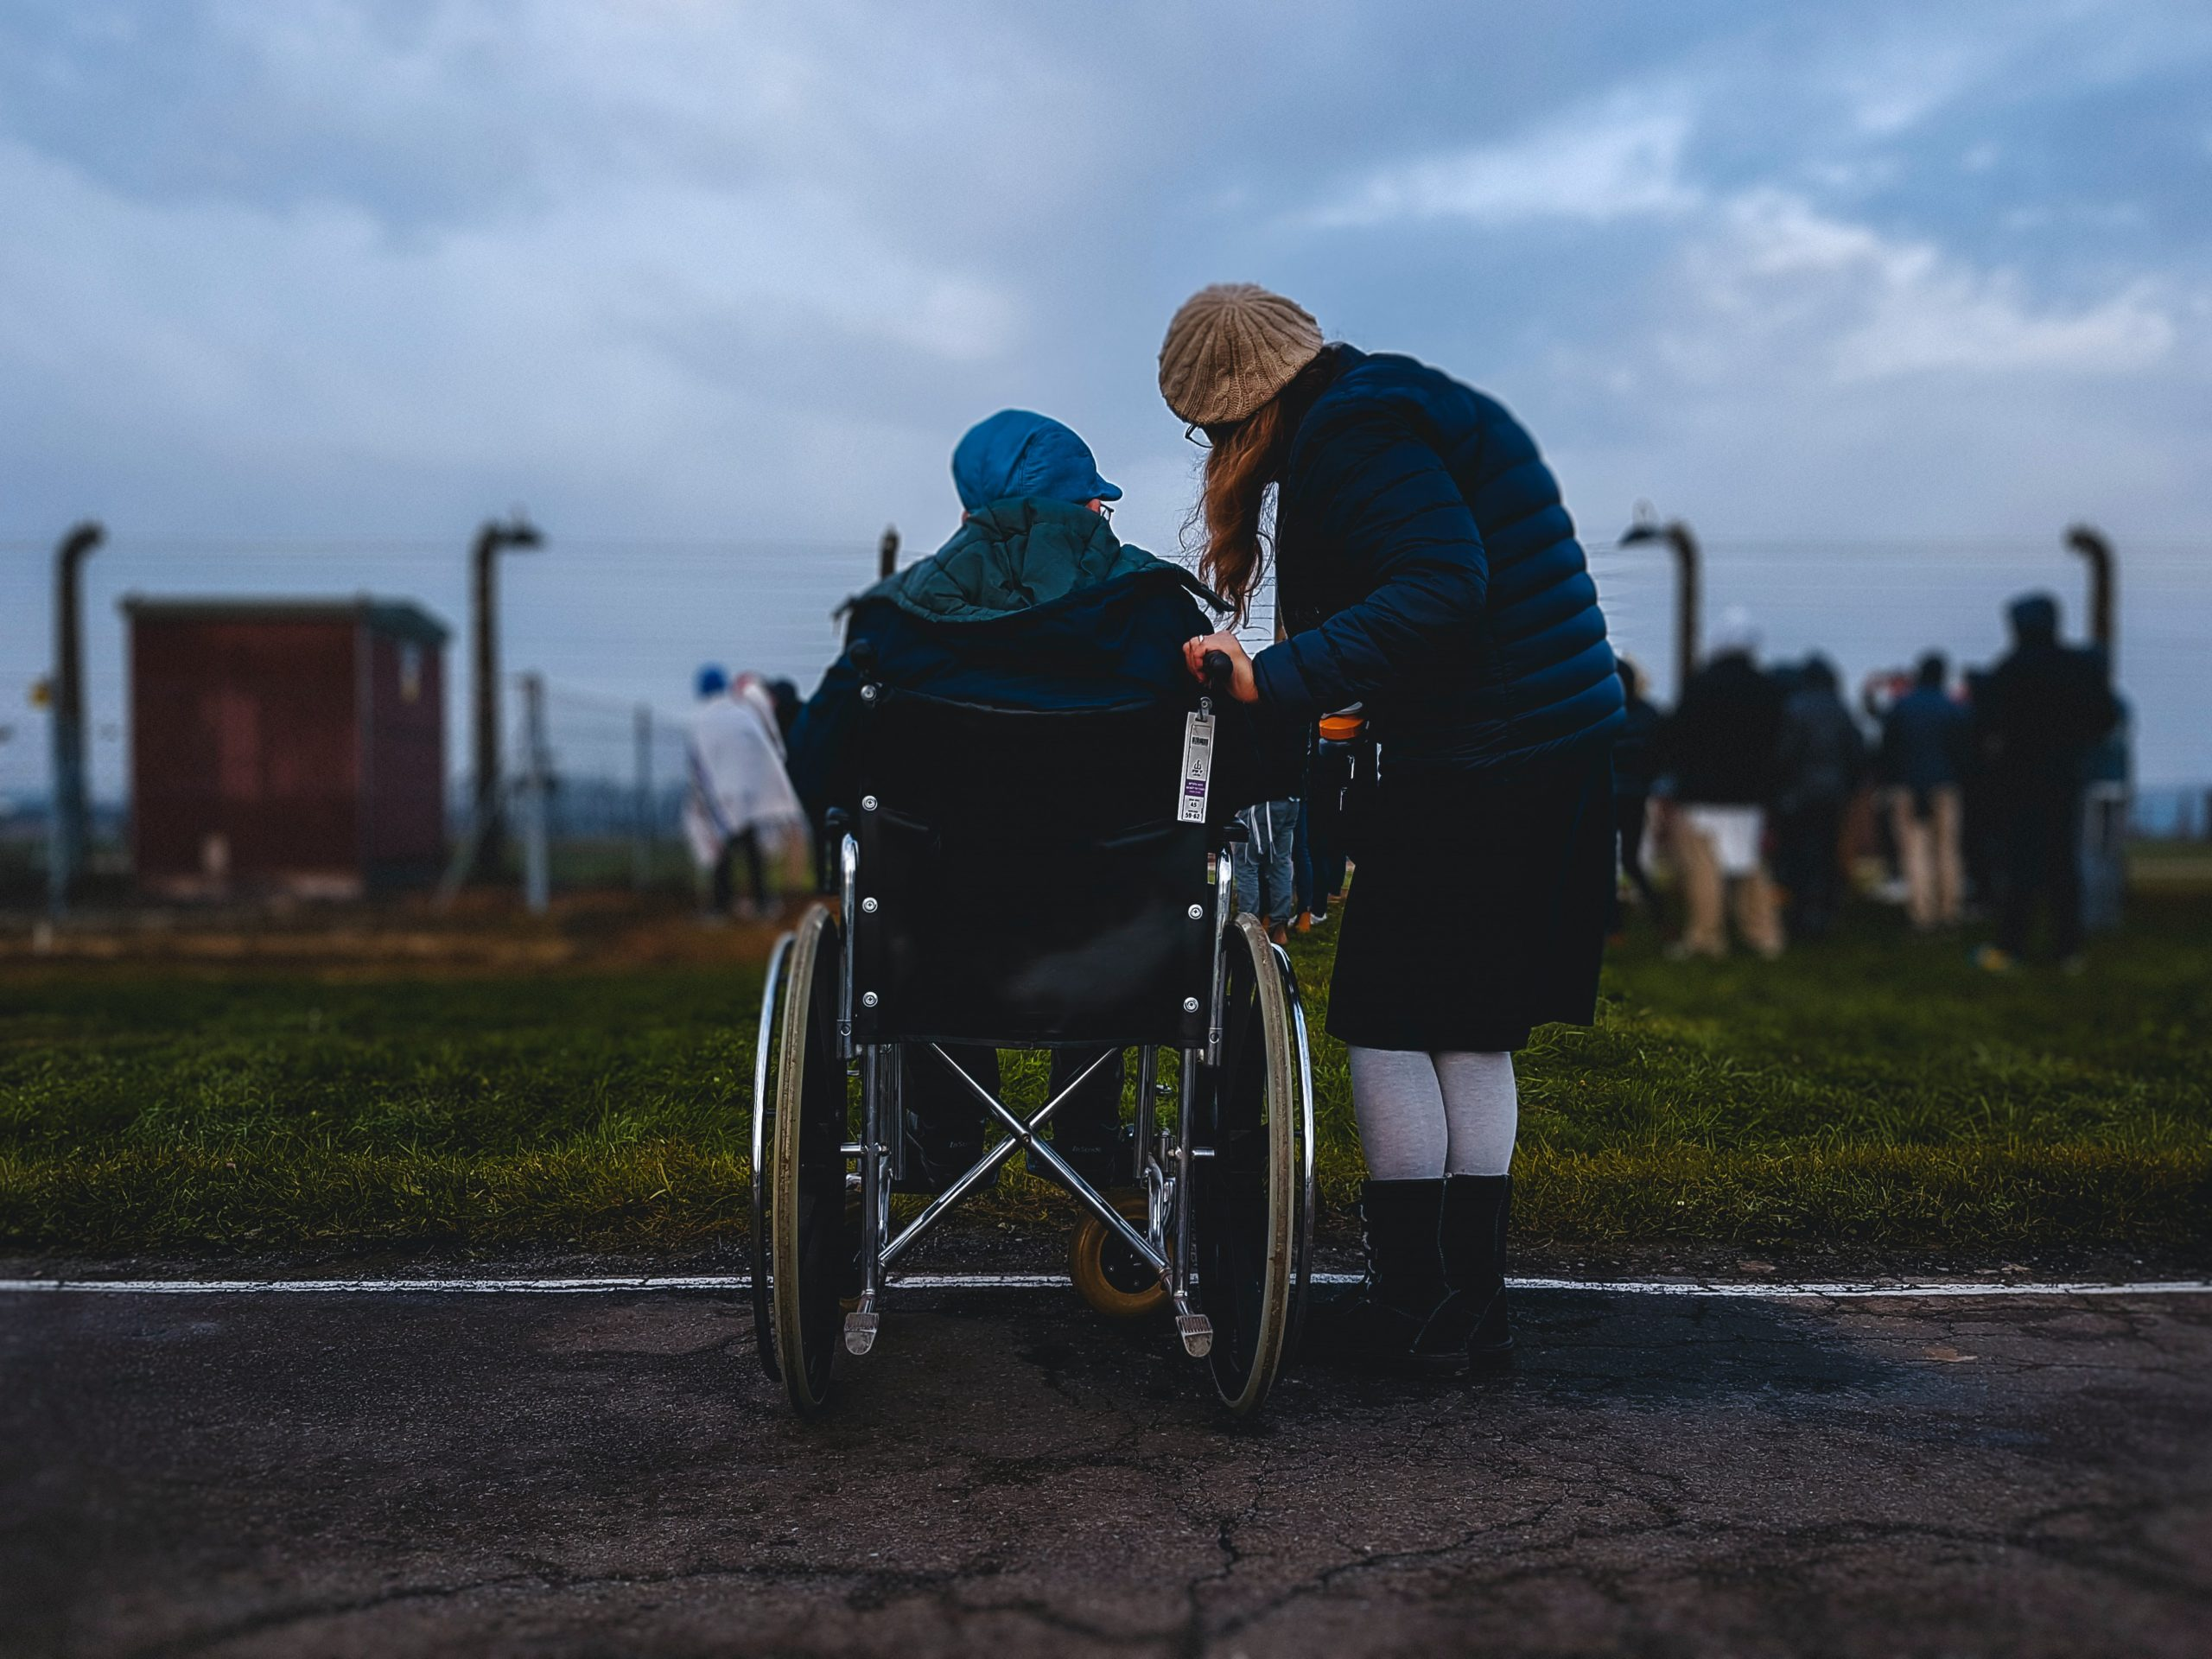 Valuing and caring for older adults – Expert Reaction